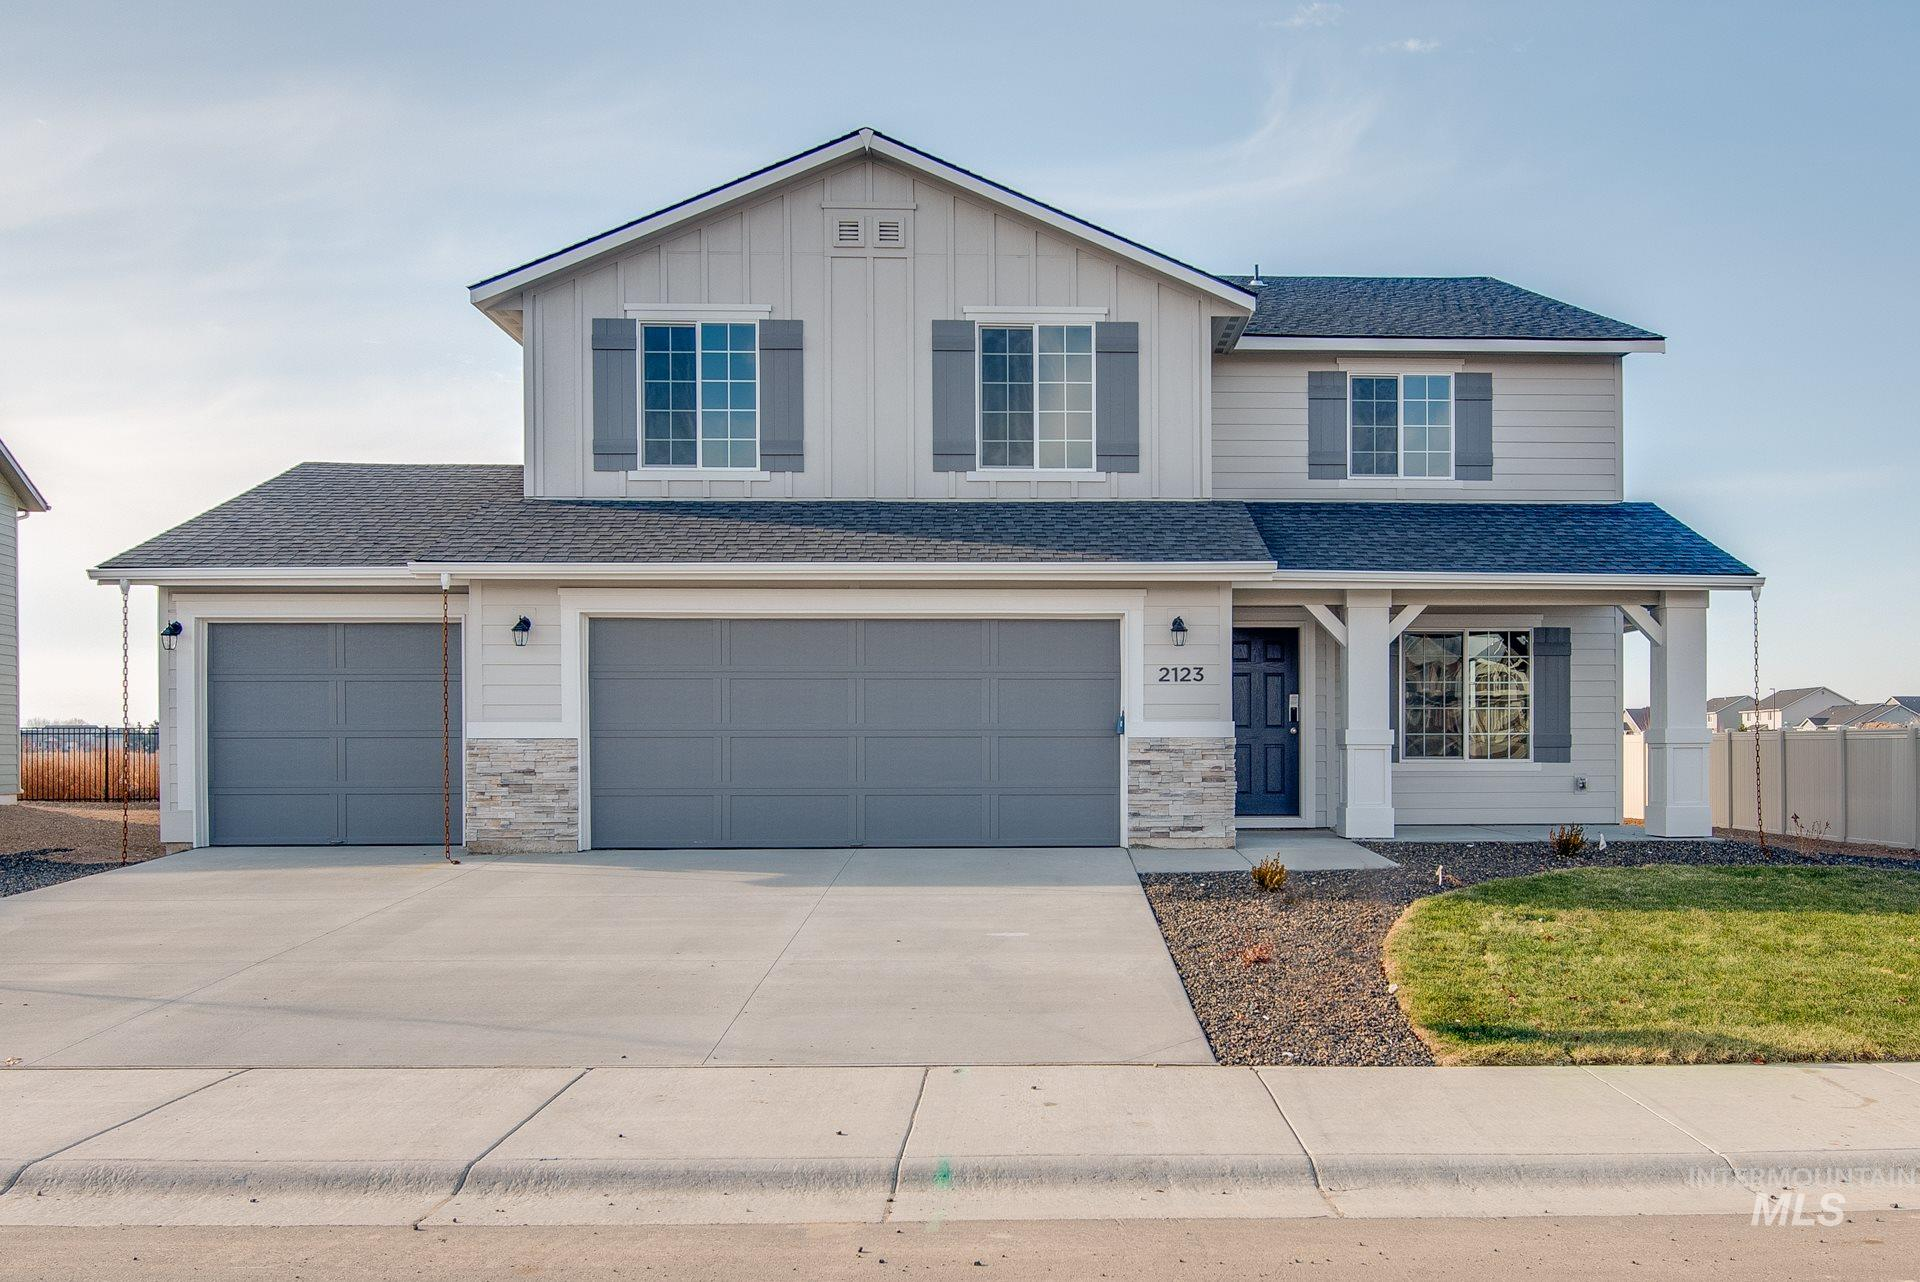 11177 W Roanoke River St Property Photo - Nampa, ID real estate listing